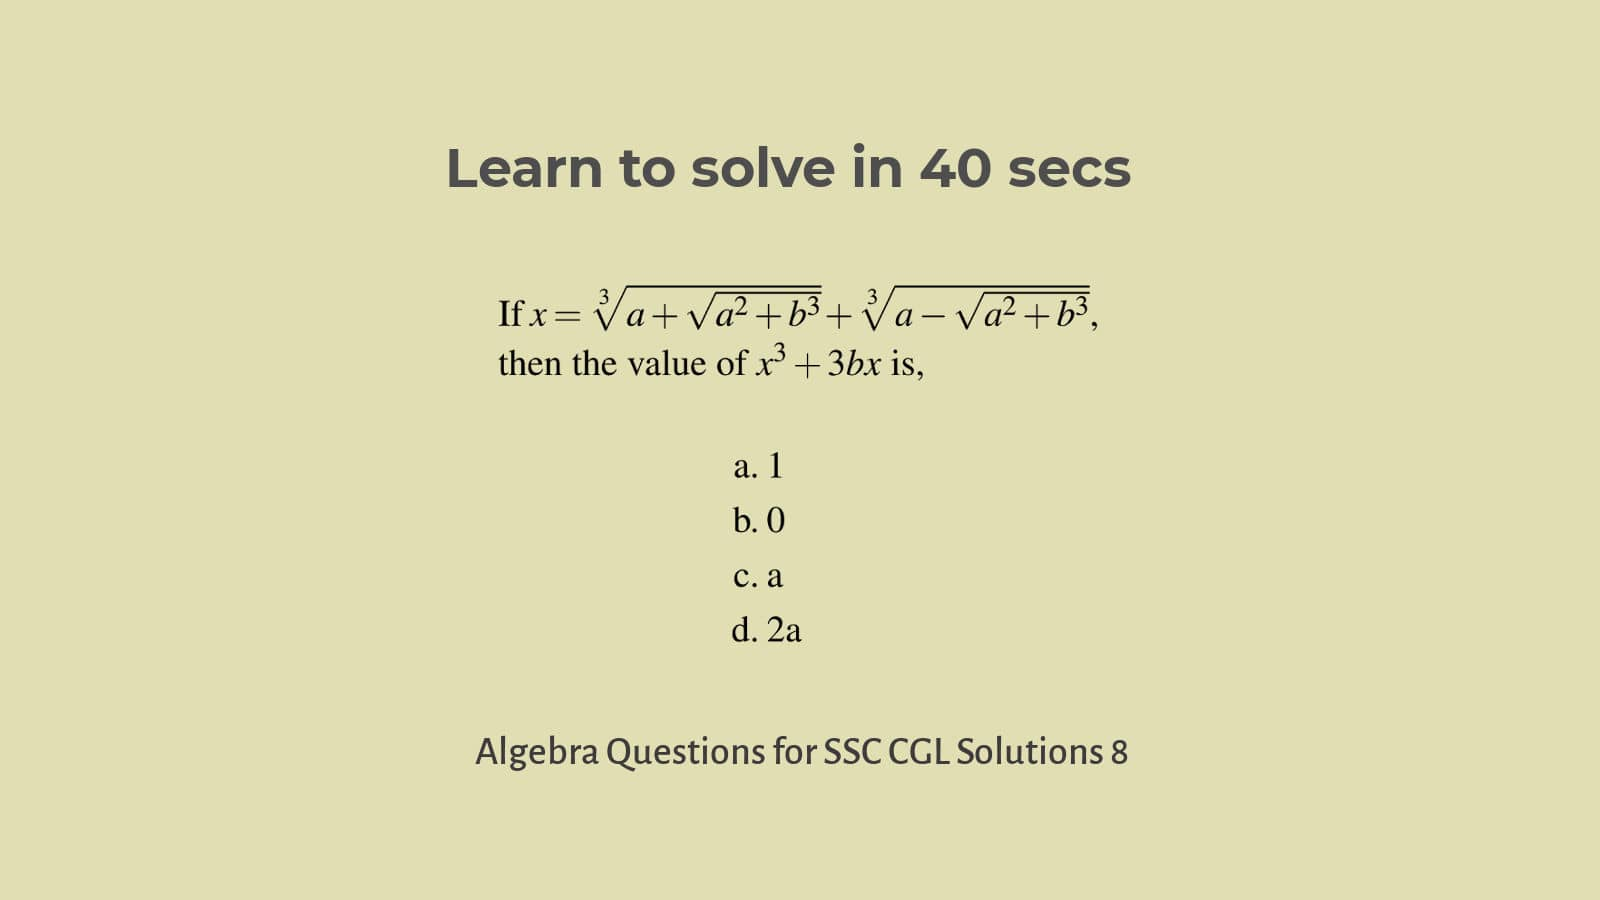 Solution to Algebra questions for SSC CGL Set 8